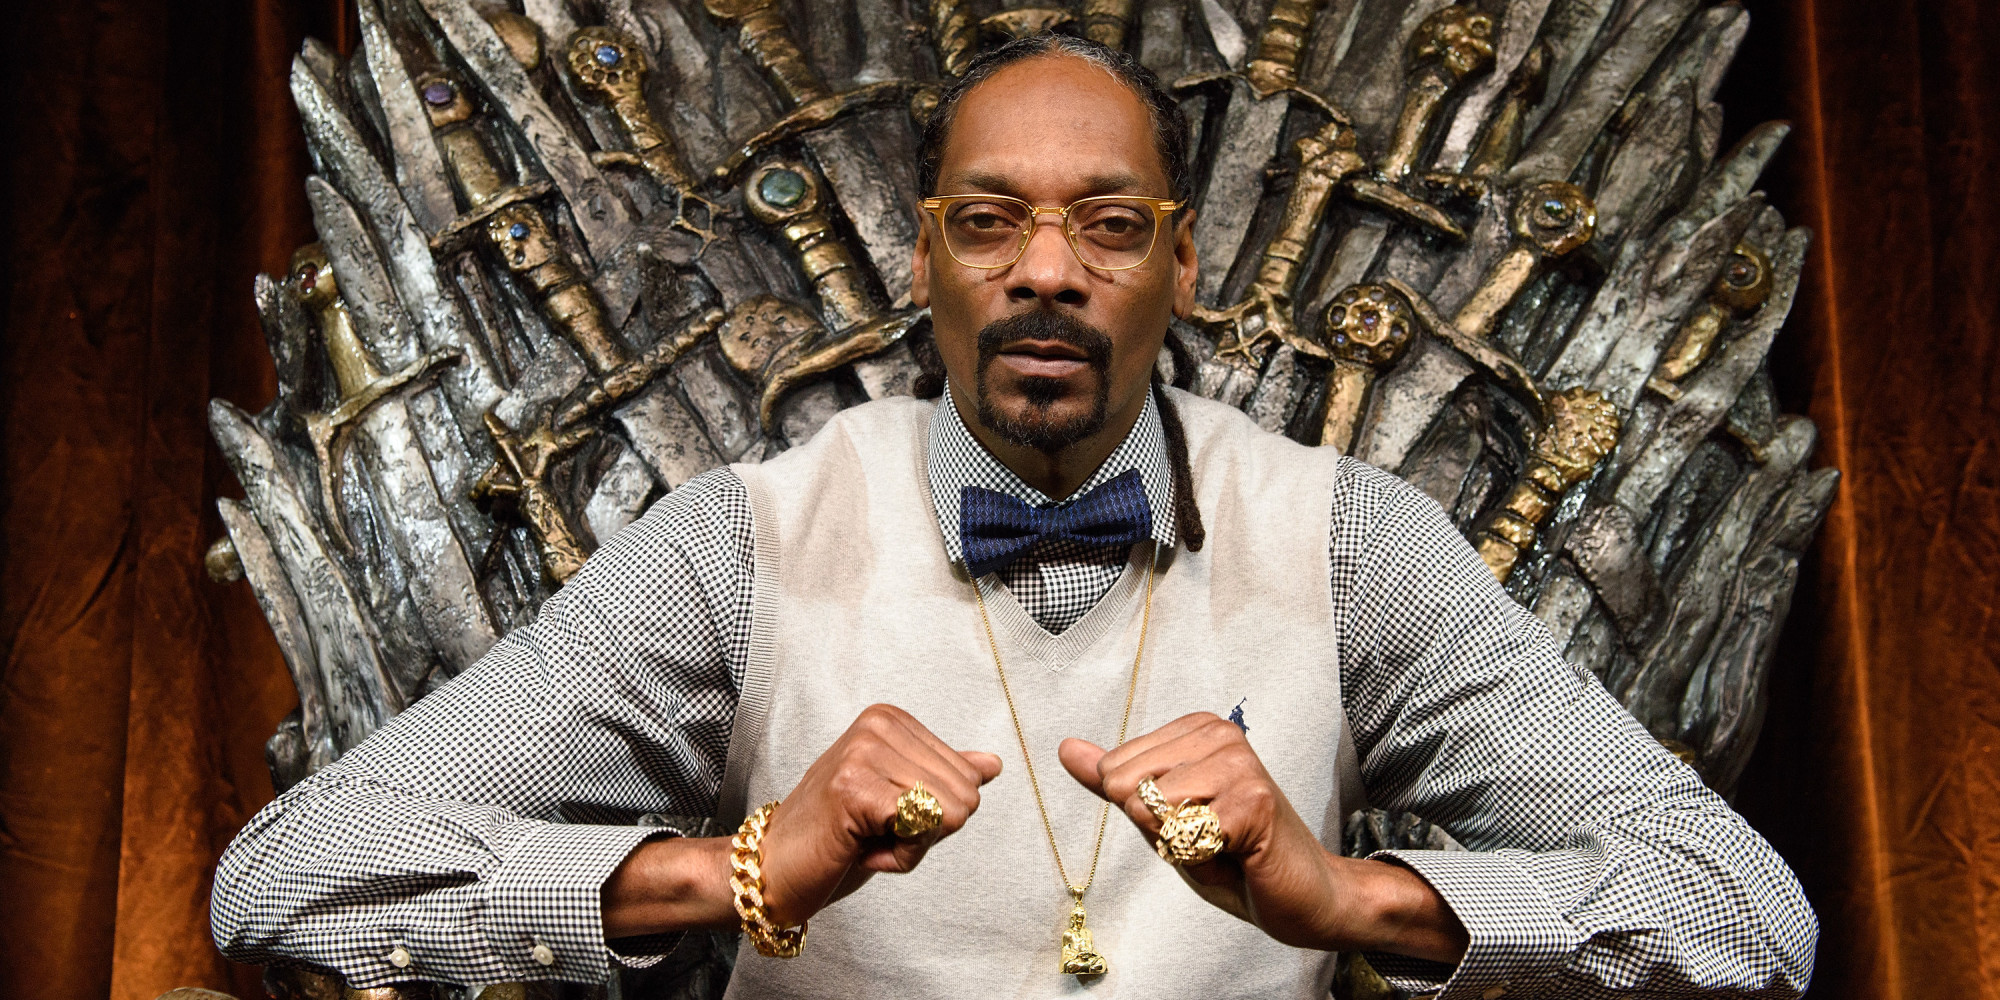 AUSTIN, TX - MARCH 20: Snoop Dogg attends HBO Game of Thrones Presents: Snoop Dogg Catch The Throne Event At SXSW on March 20, 2015 in Austin, Texas. (Photo by Daniel Boczarski/Getty Images for HBO Game of Thrones)